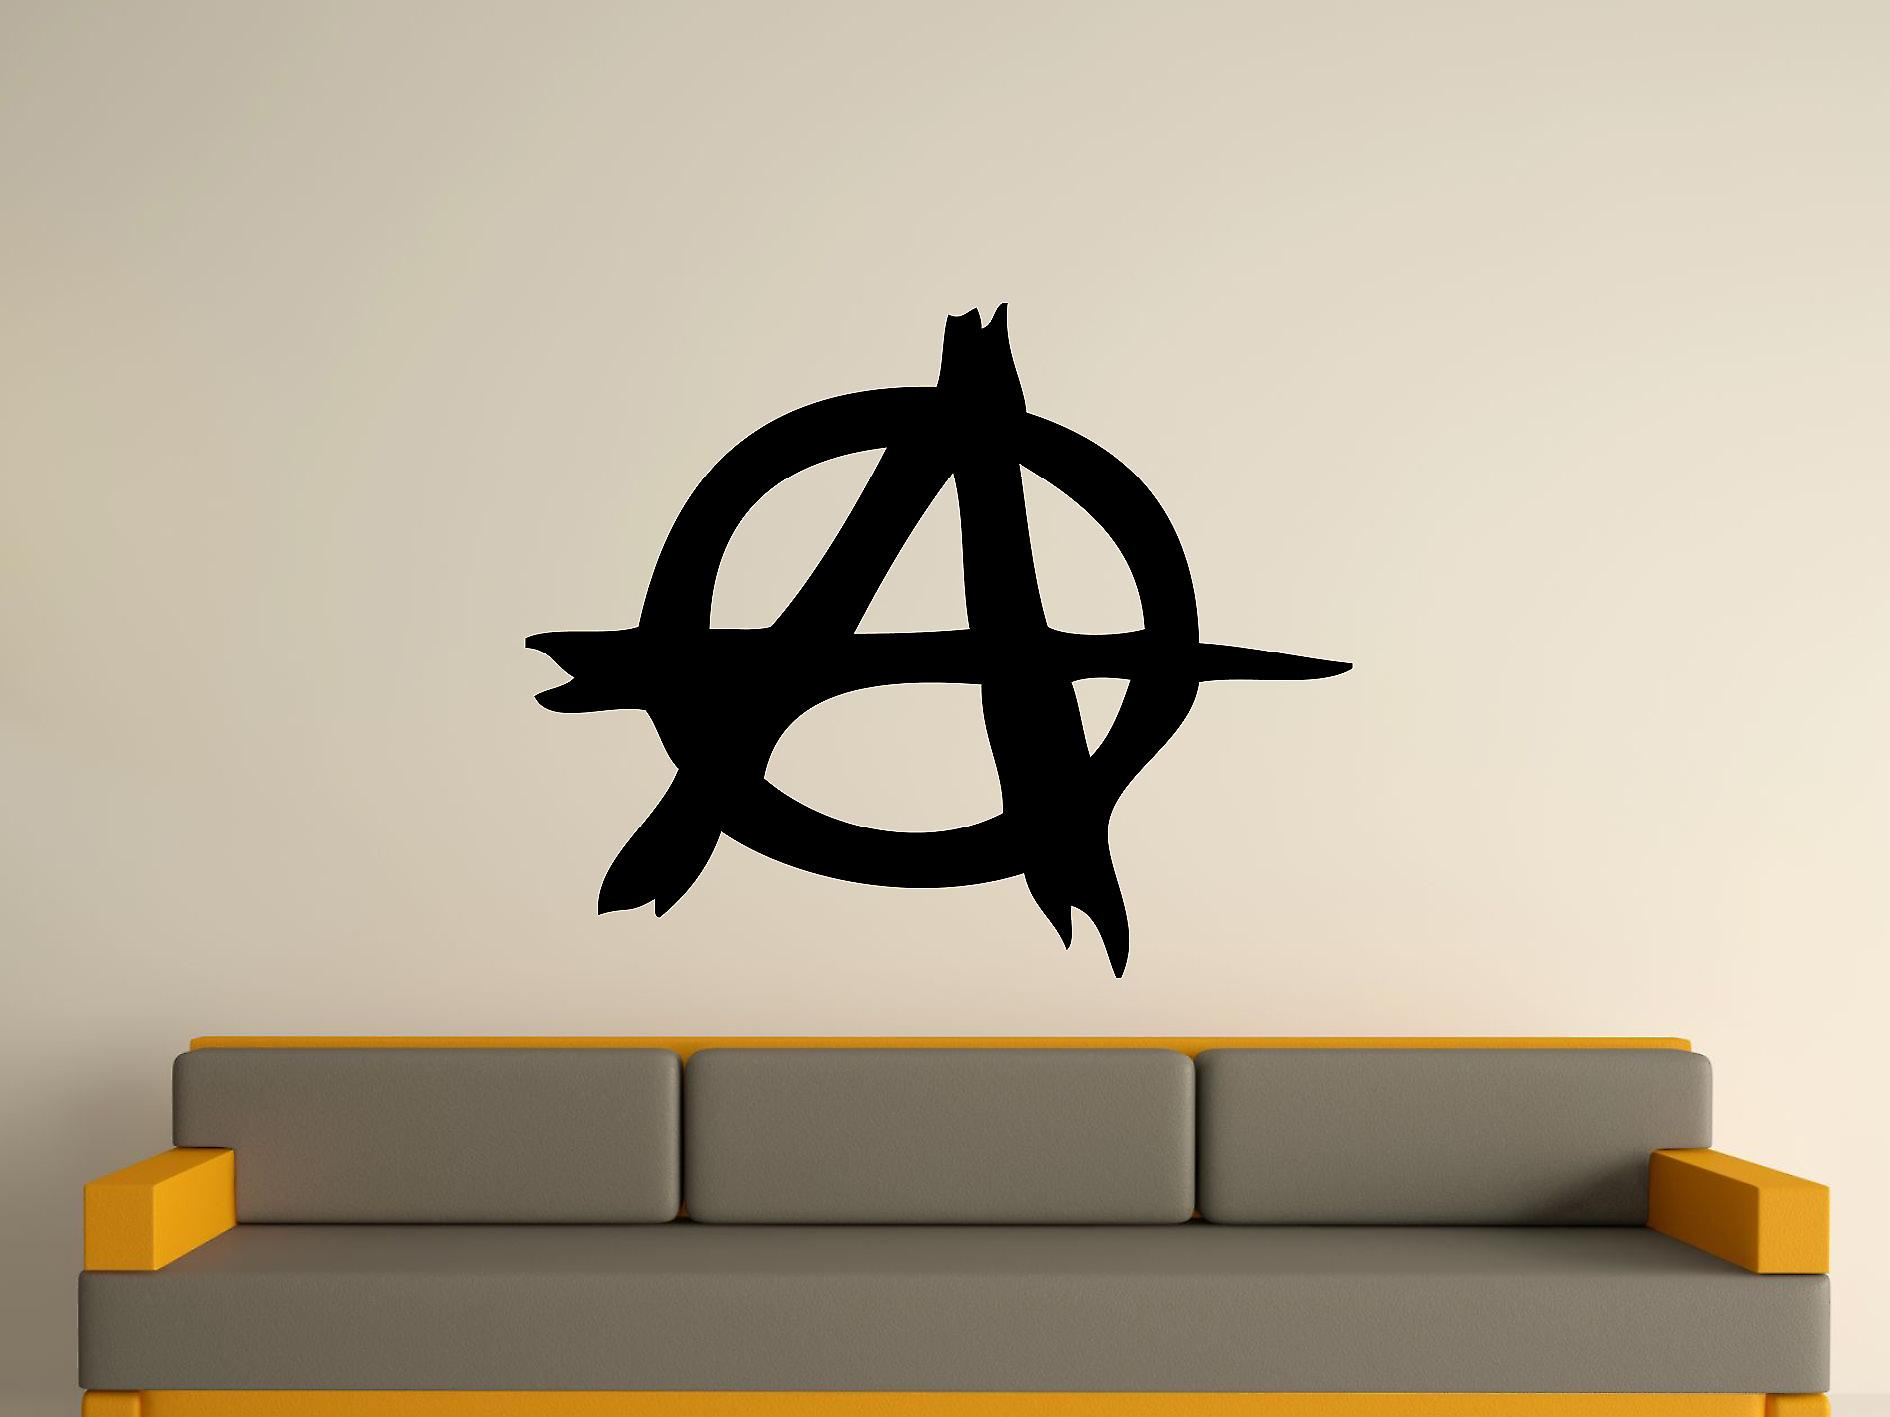 Anarchy Symbole Wall Art autocollants - Noir